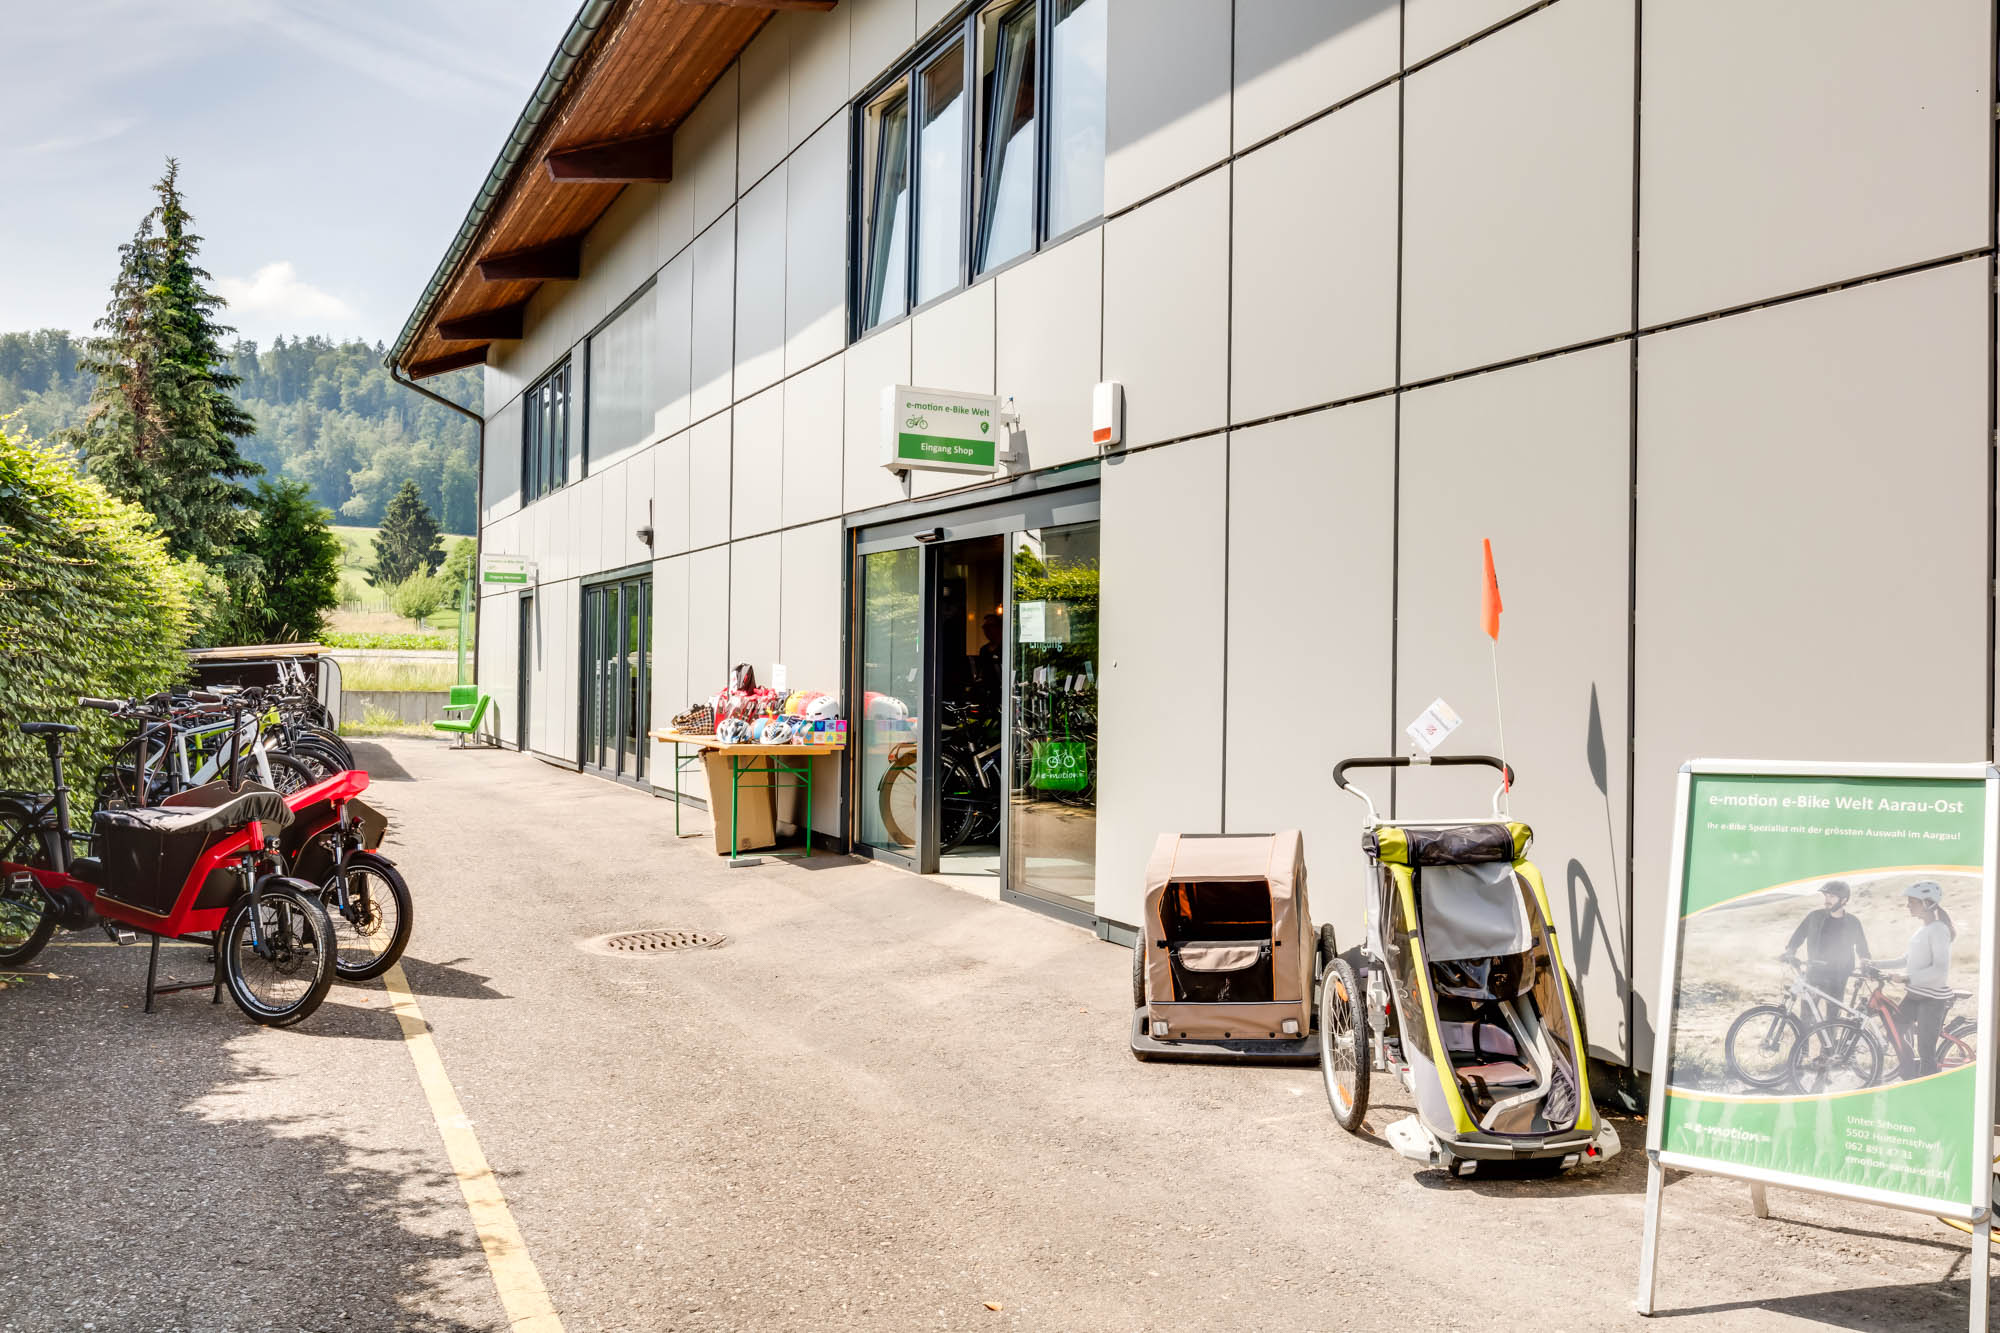 e-motion e-Bike Welt Aarau-Ost